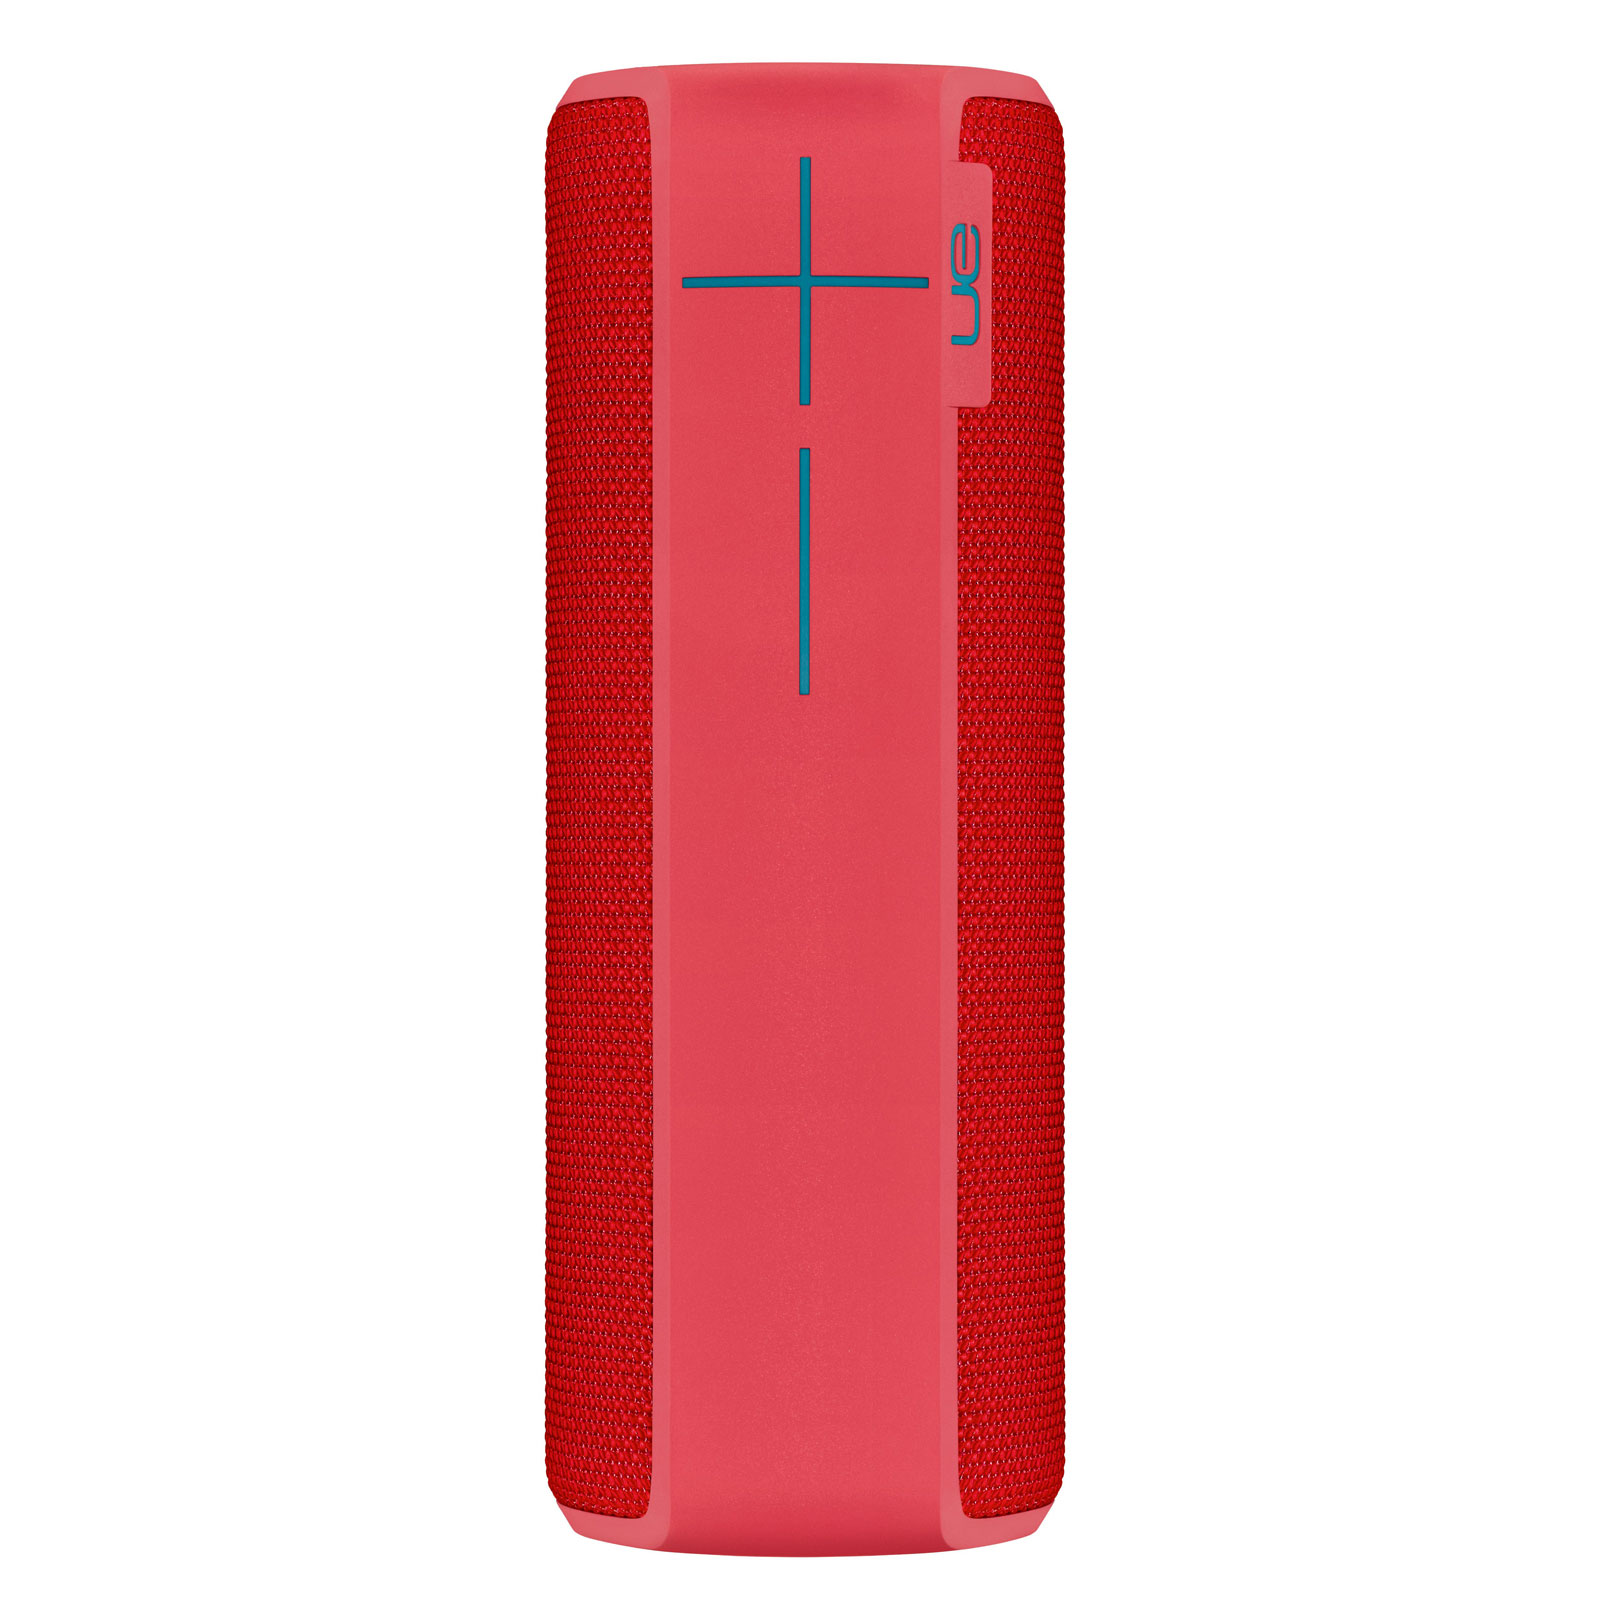 Ue boom 2 rouge dock enceinte bluetooth ultimate ears for Housse ue boom 2